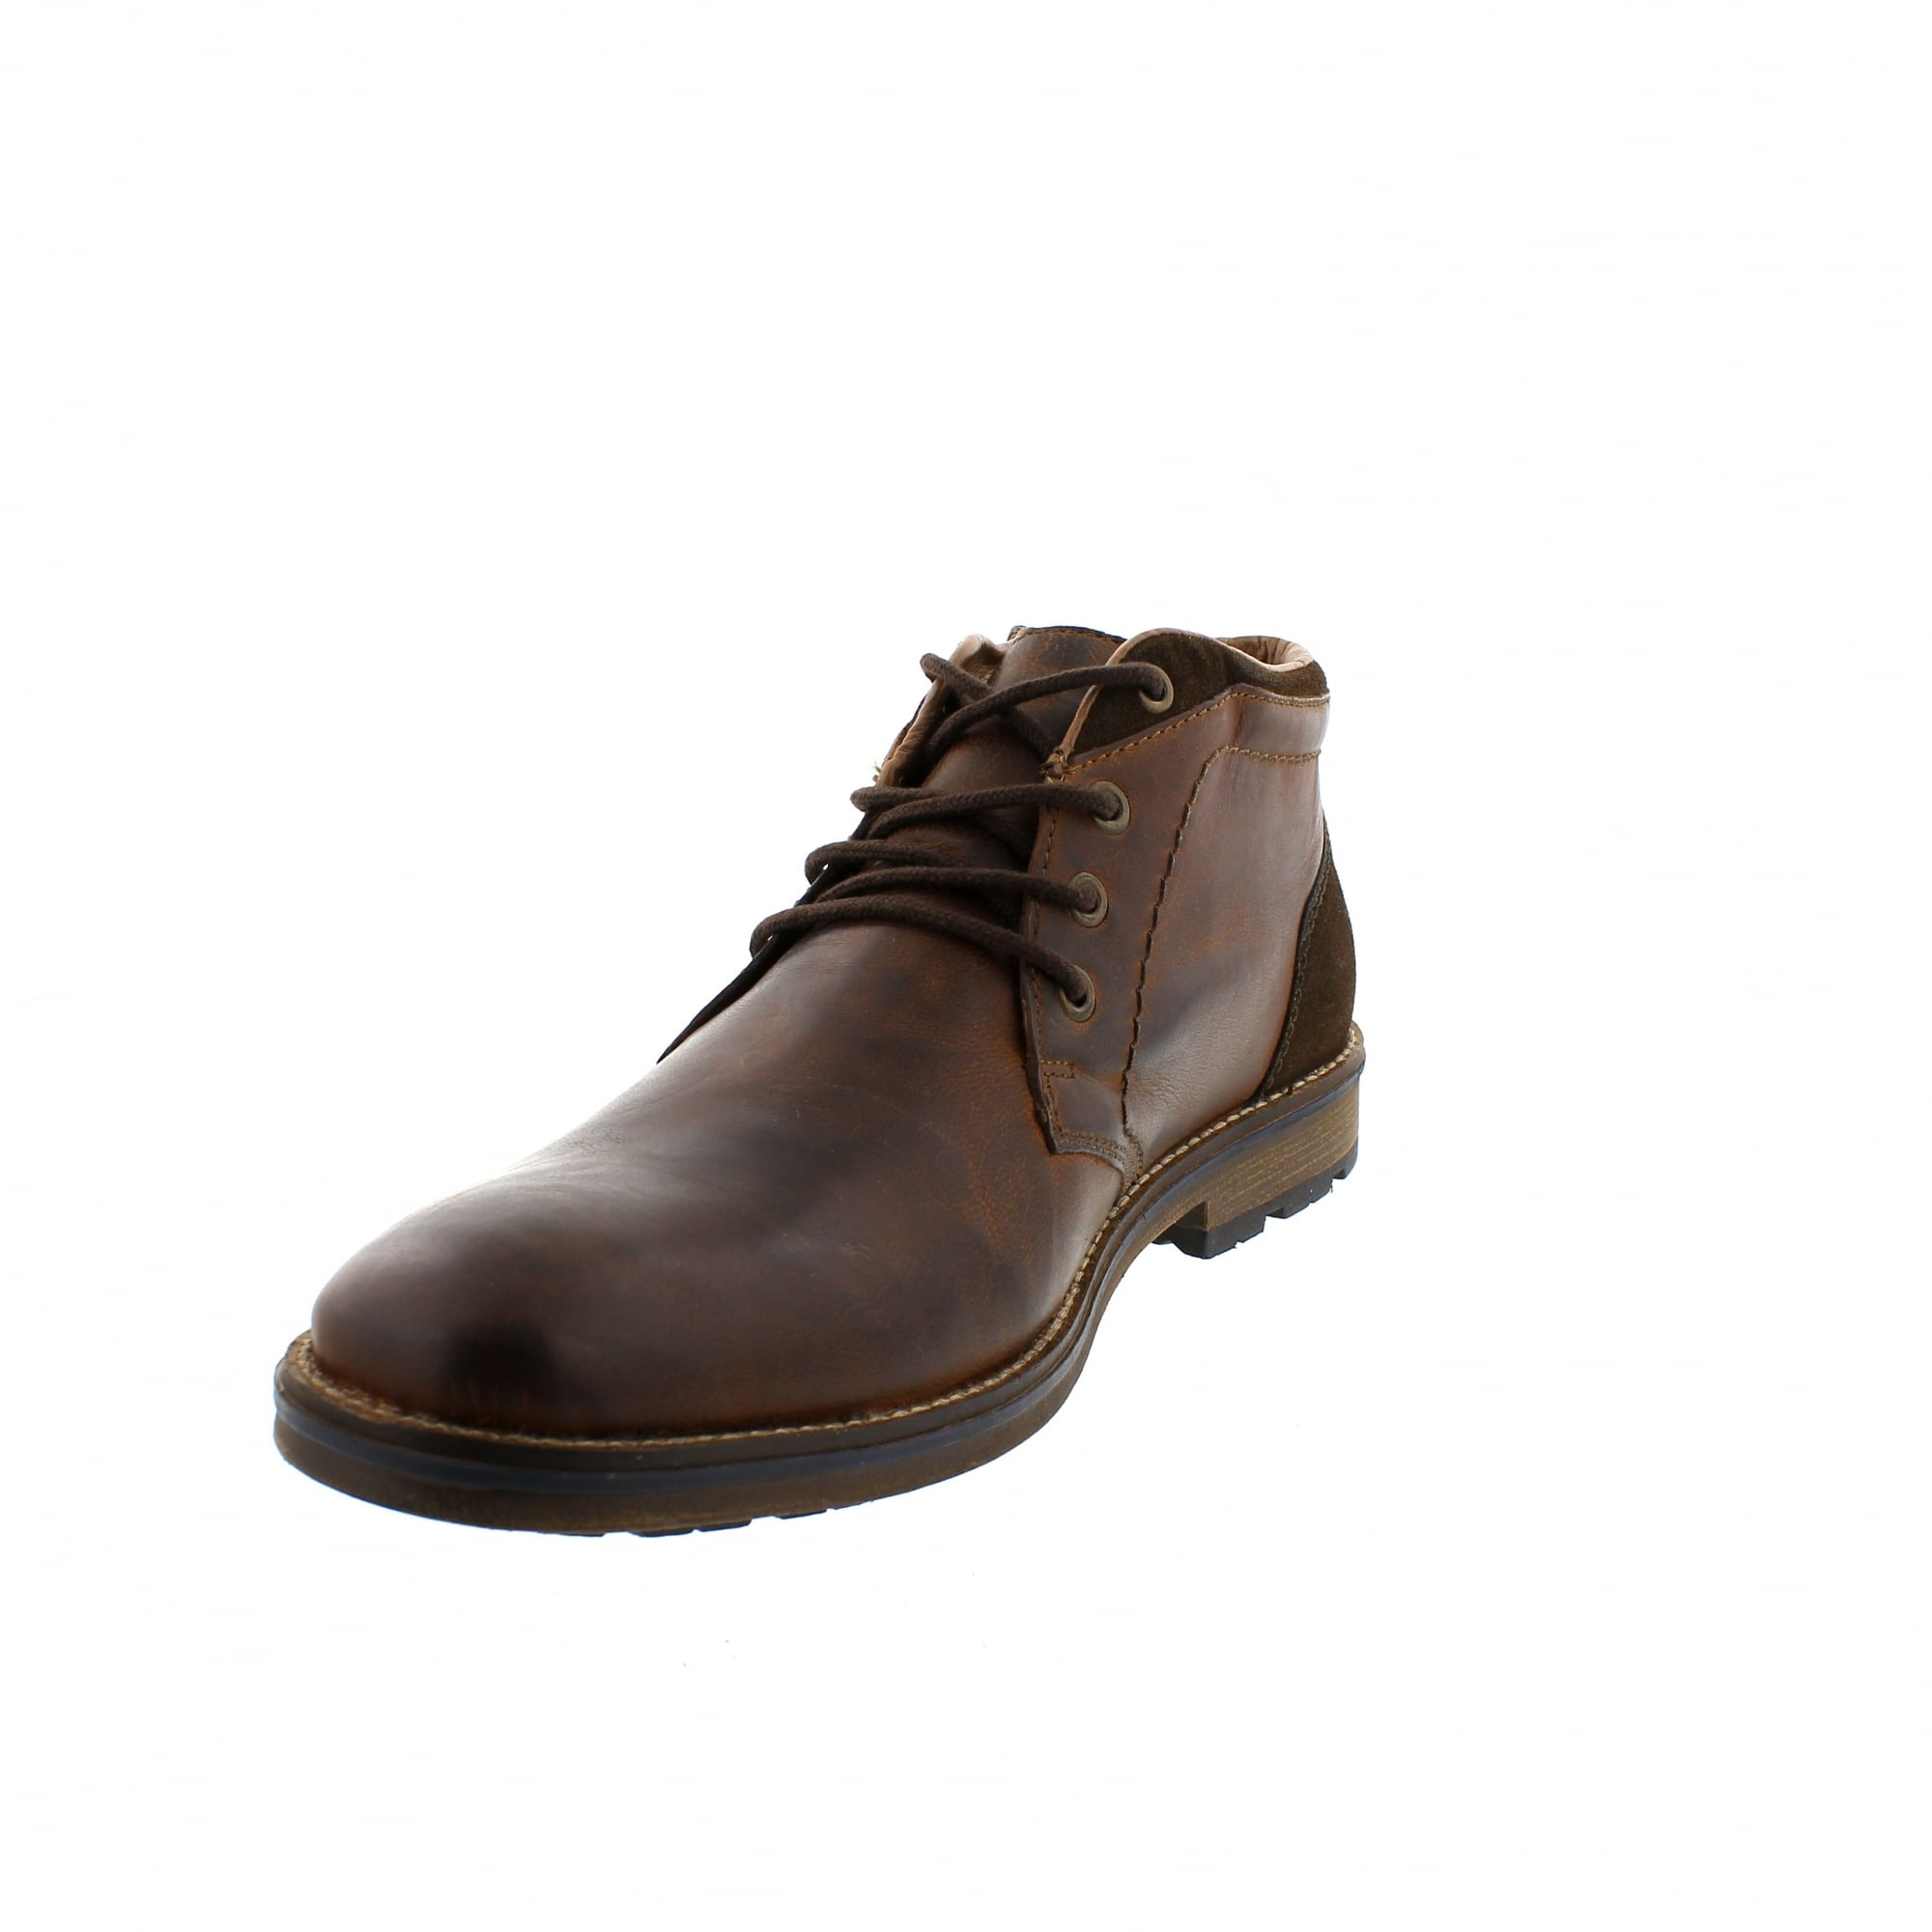 56e13dafb39d6b Rieker F5531-22 Brown Leather Mens Ankle Boots